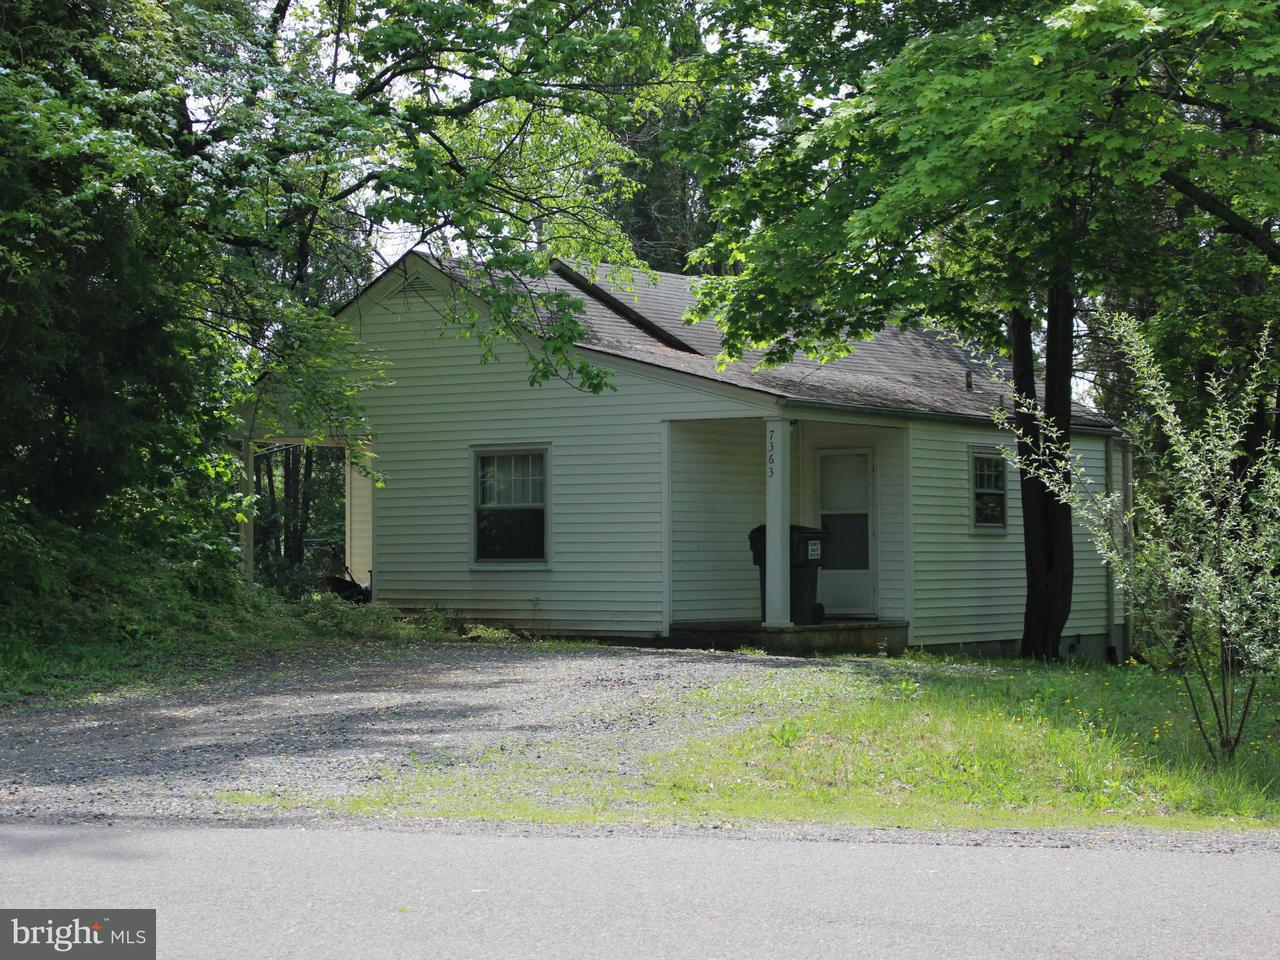 Multi-Family Home for Sale at 6806 JAMES MADISON HWY 6806 JAMES MADISON HWY Warrenton, Virginia 20186 United States